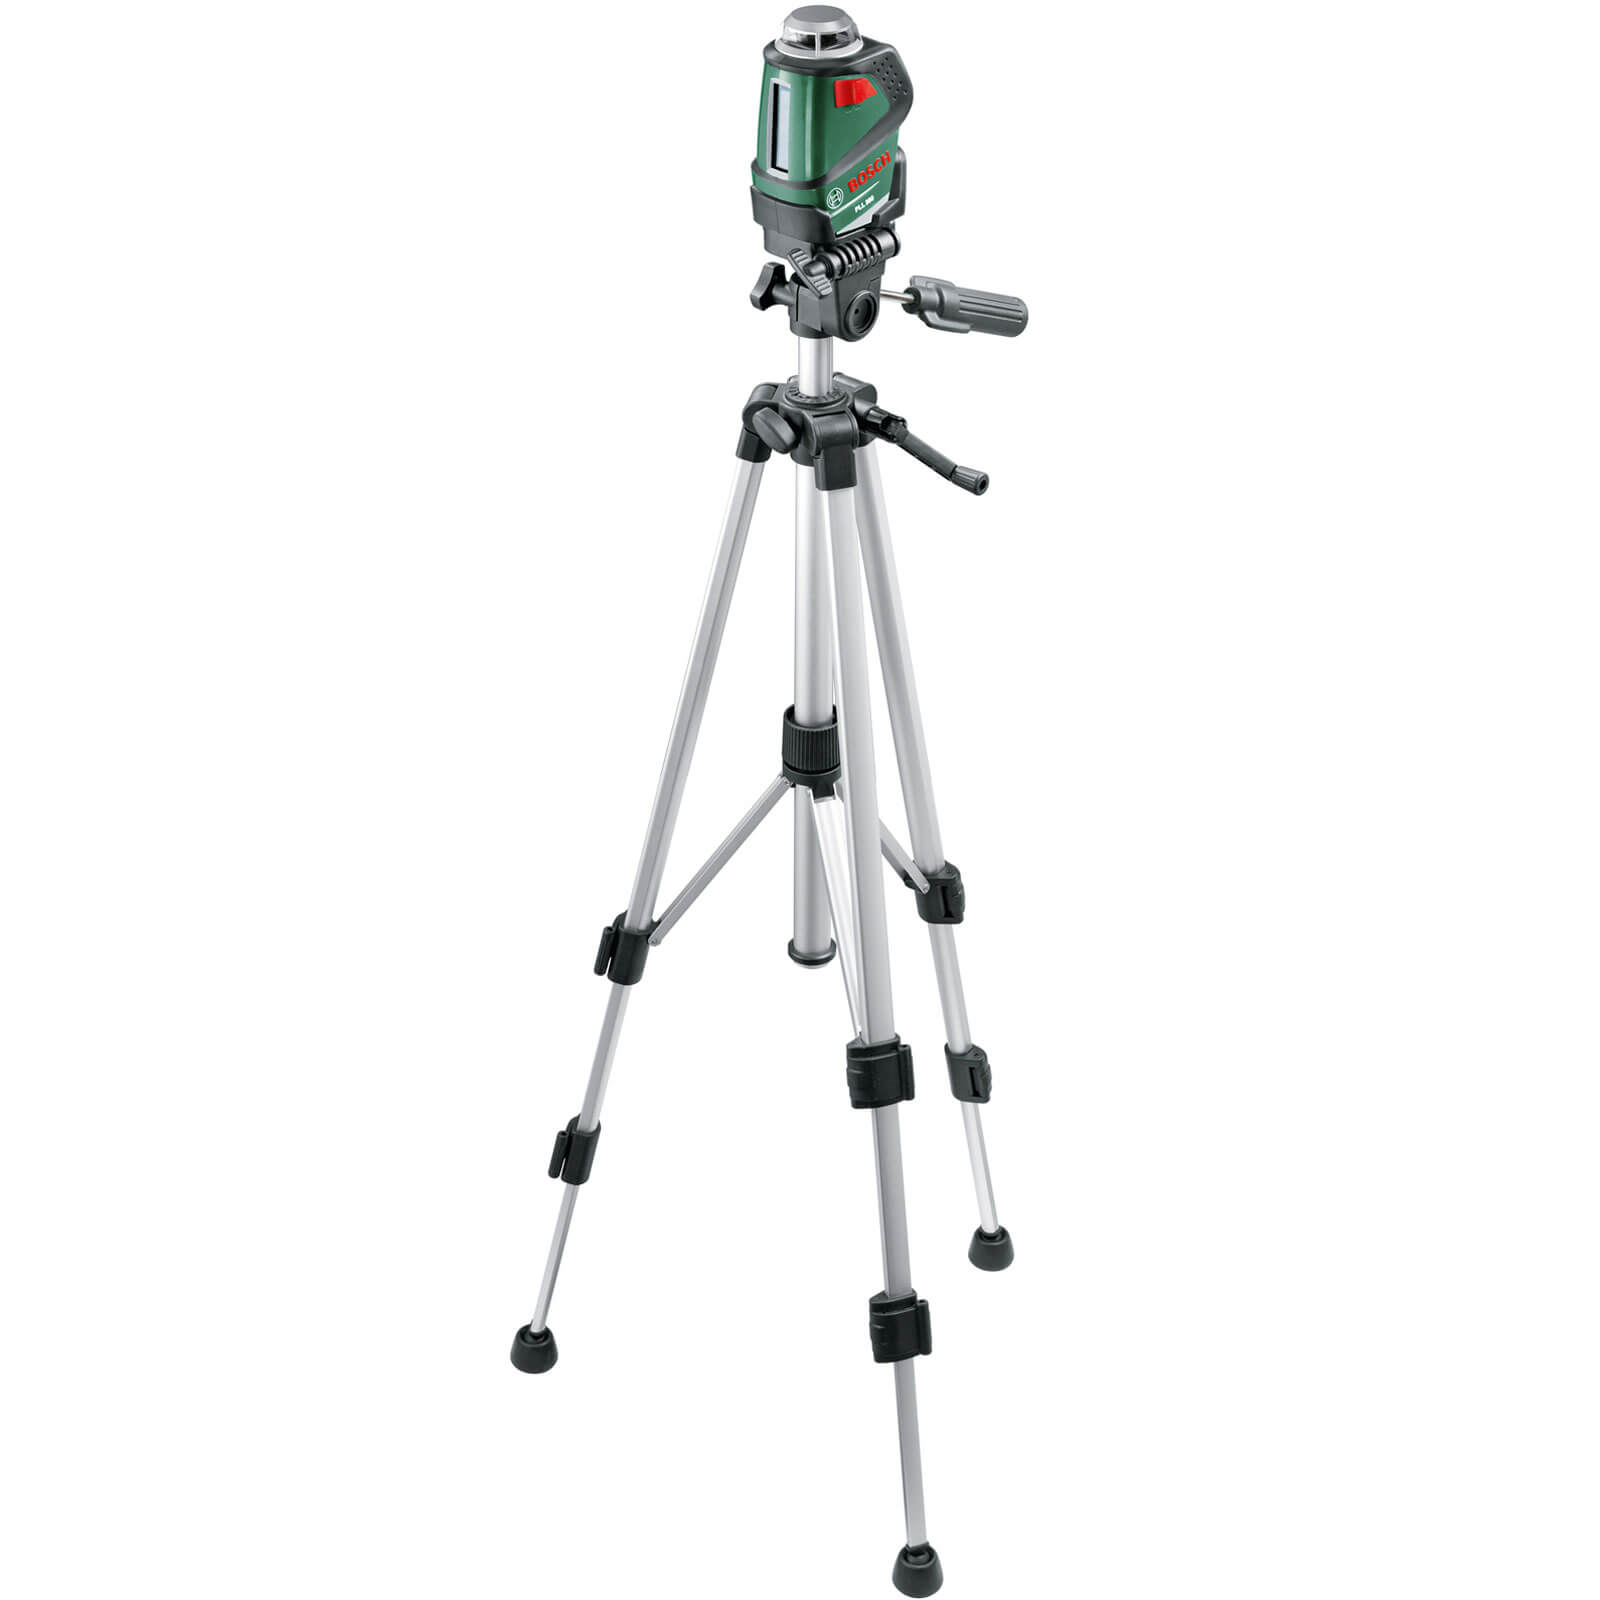 Bosch PLL 360 Self Levelling Line Laser Level with Telescopic Pole